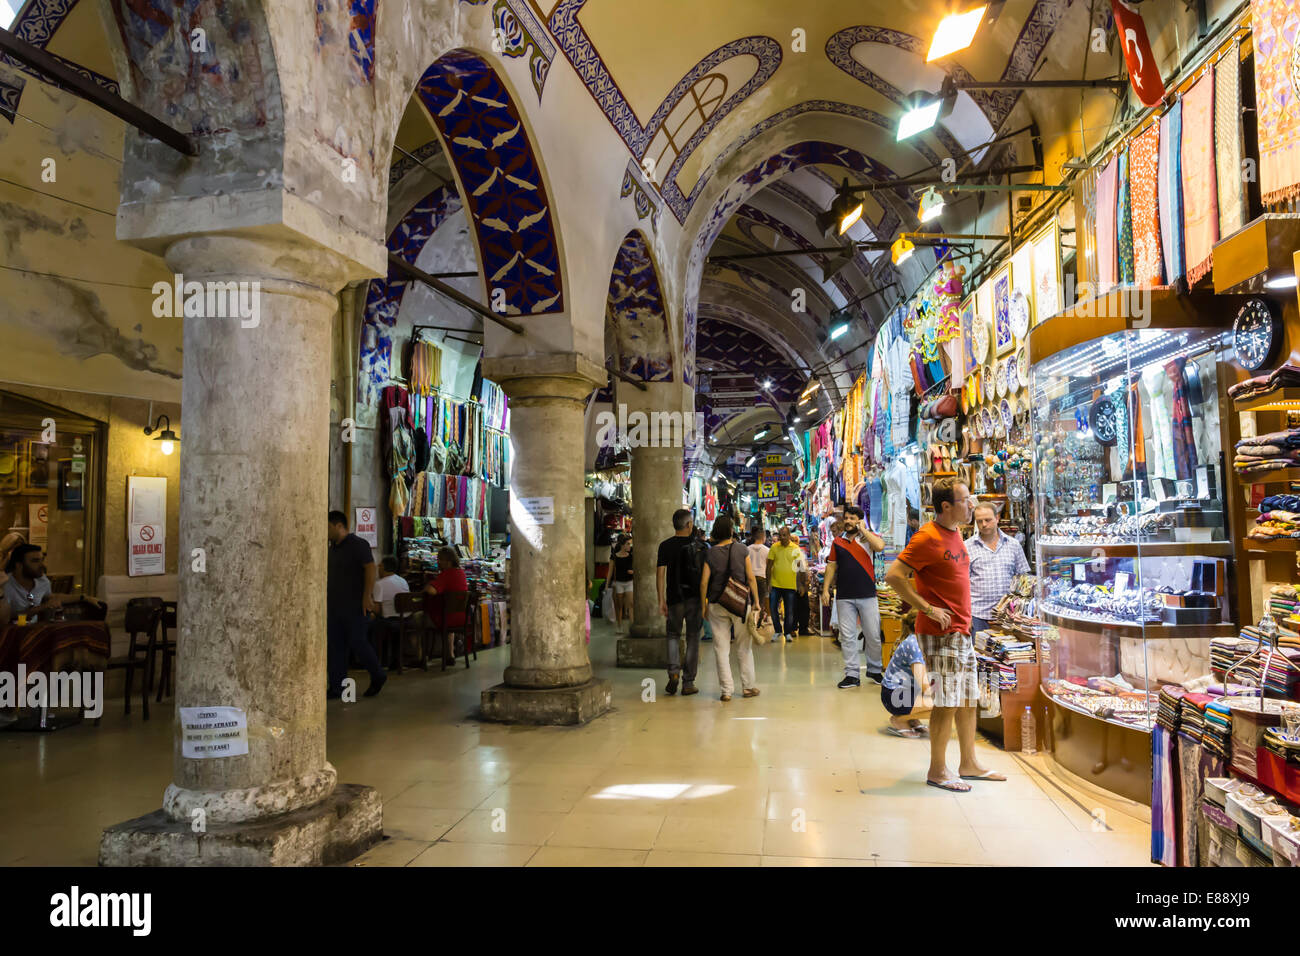 Street with shops and stone columns and decorated ceiling, Grand Bazaar, Istanbul, Turkey, Europe - Stock Image